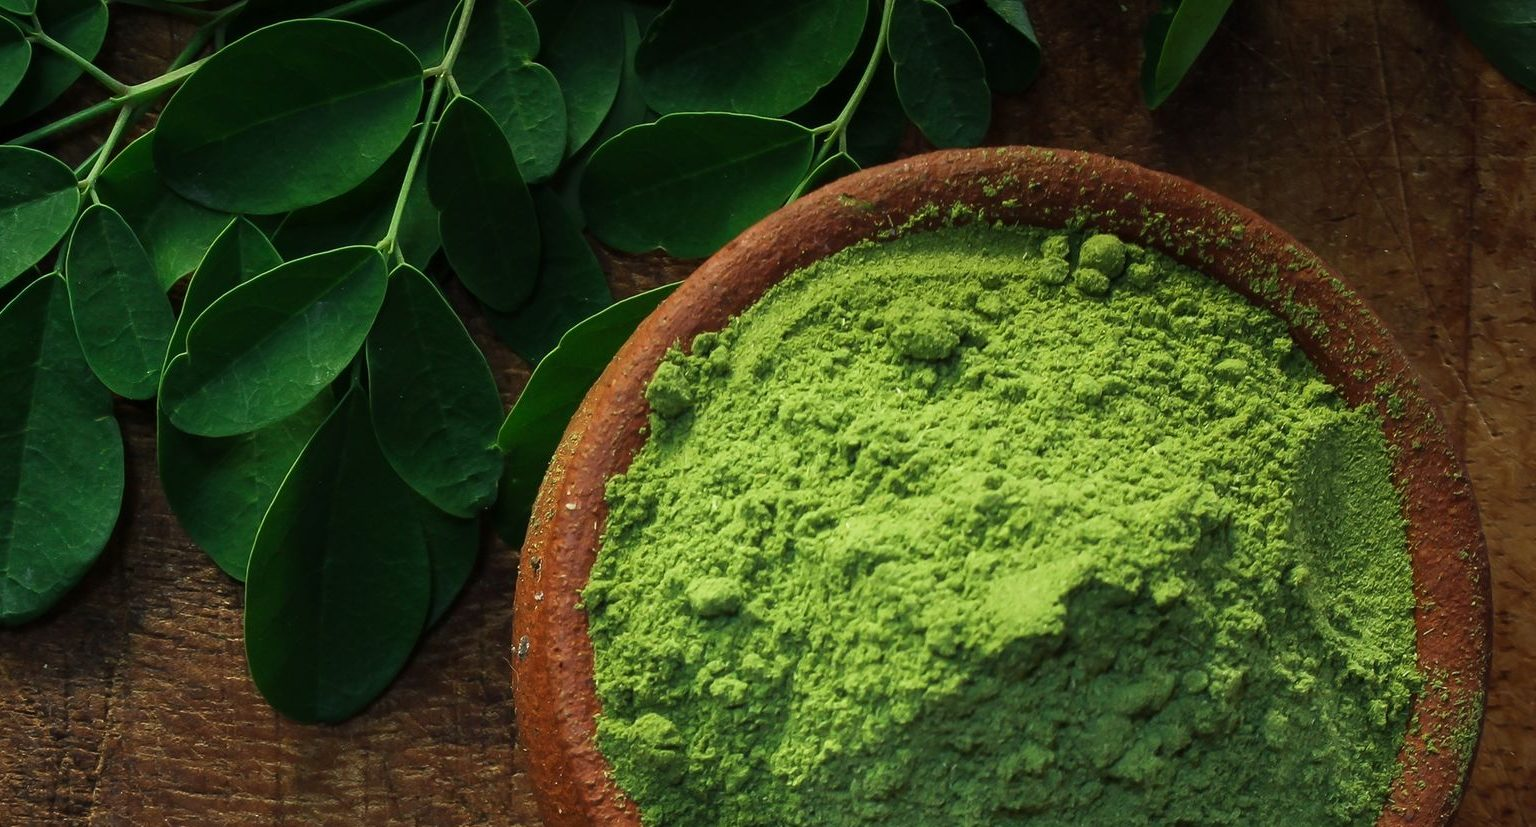 Best Moringa Product 2020: Shopping Guide & Review